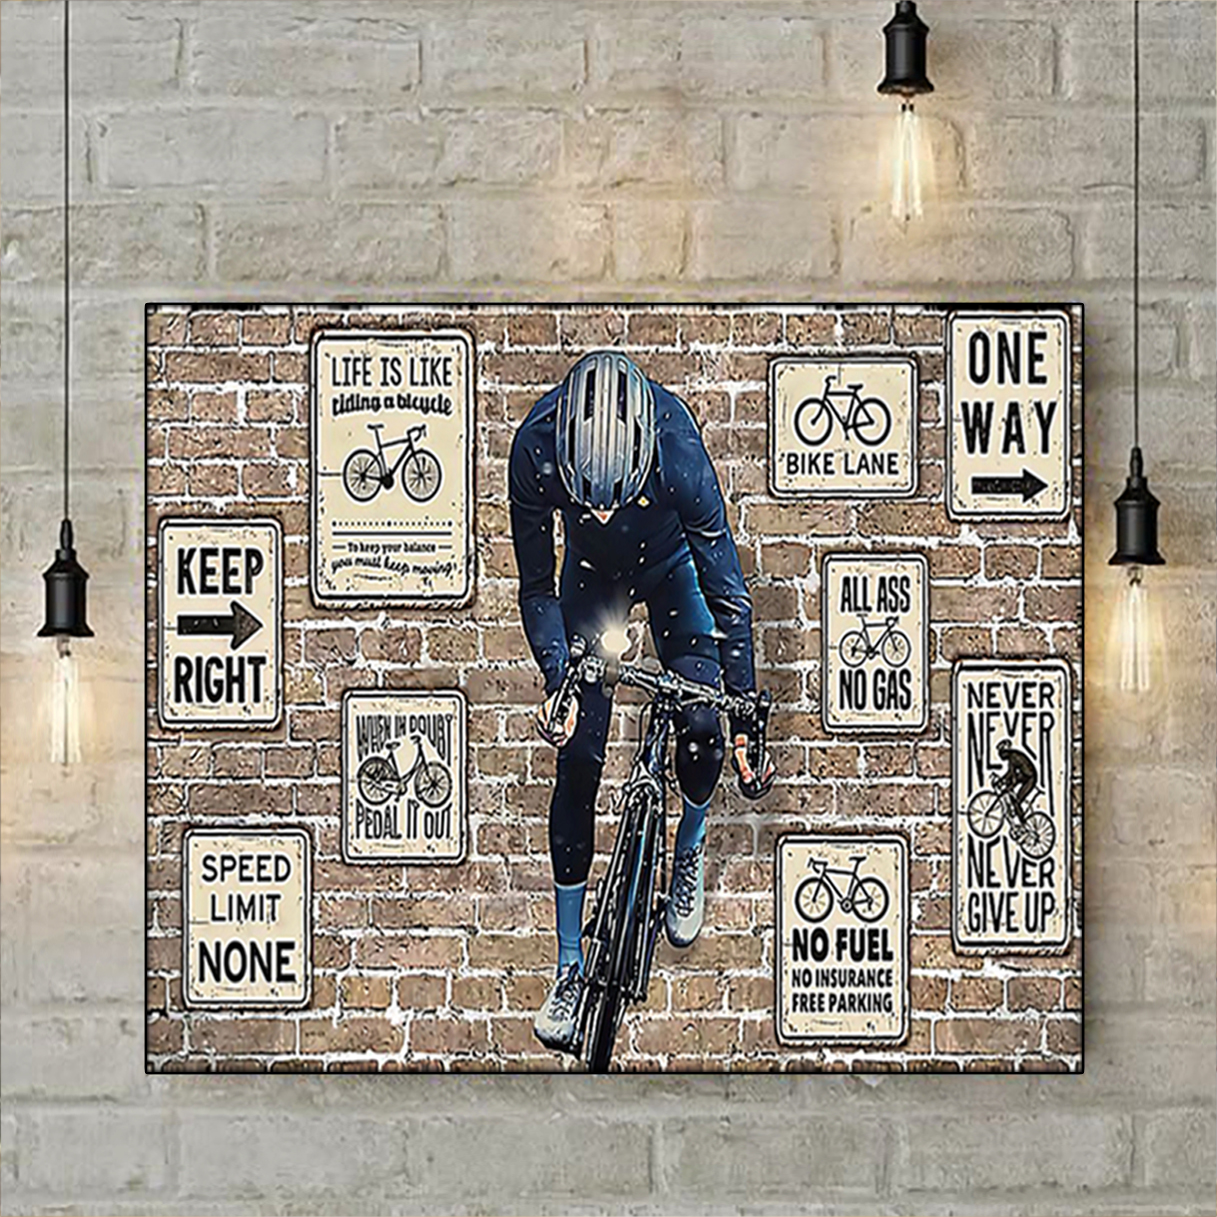 Cycling keep right one way poster A2